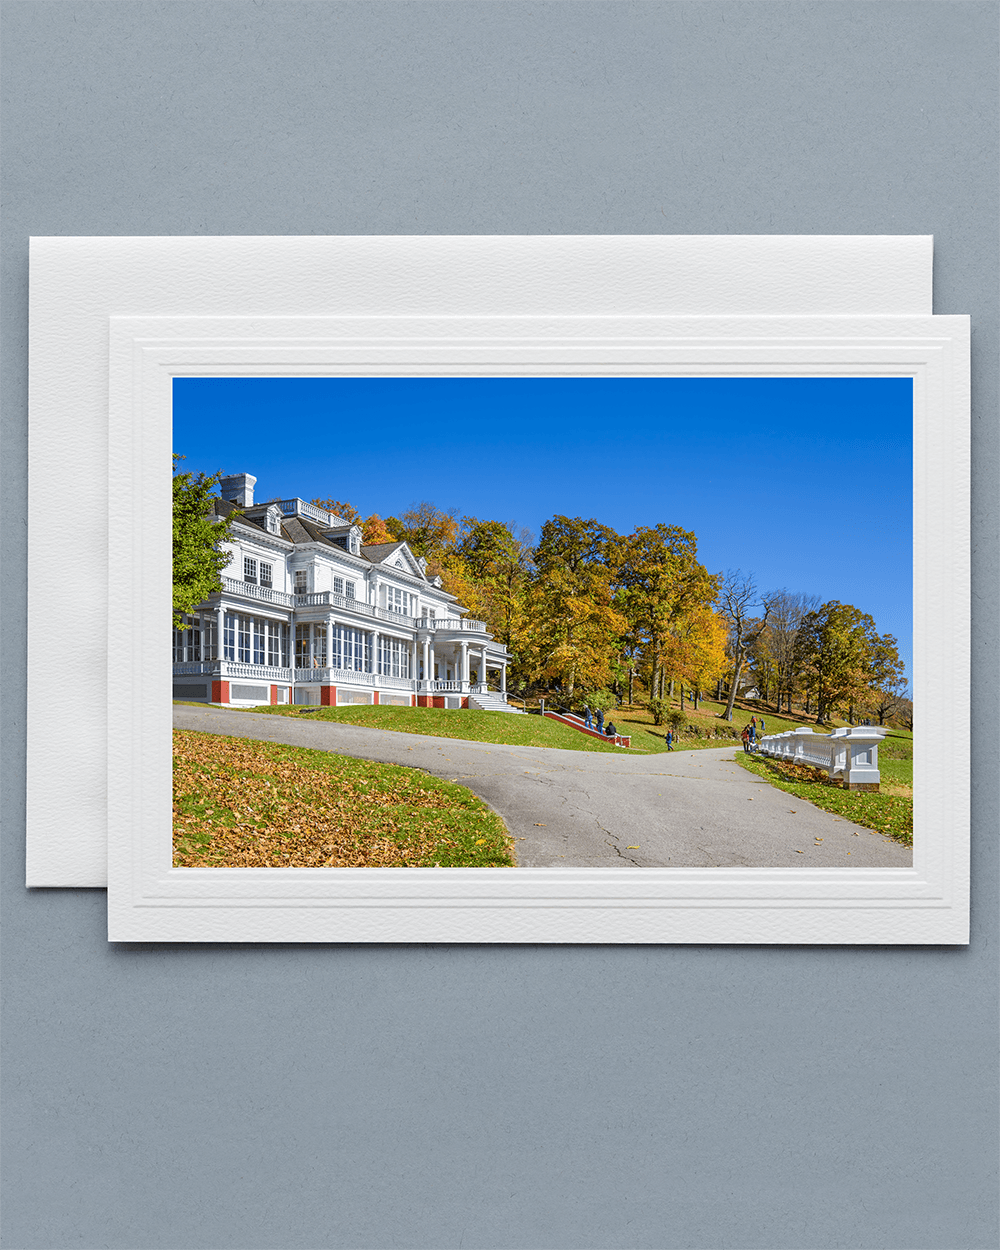 Send a lovely Greeting Card with a real photograph of Flat Top Manor - All Greeting Cards are handmade by us in the U.S.A.